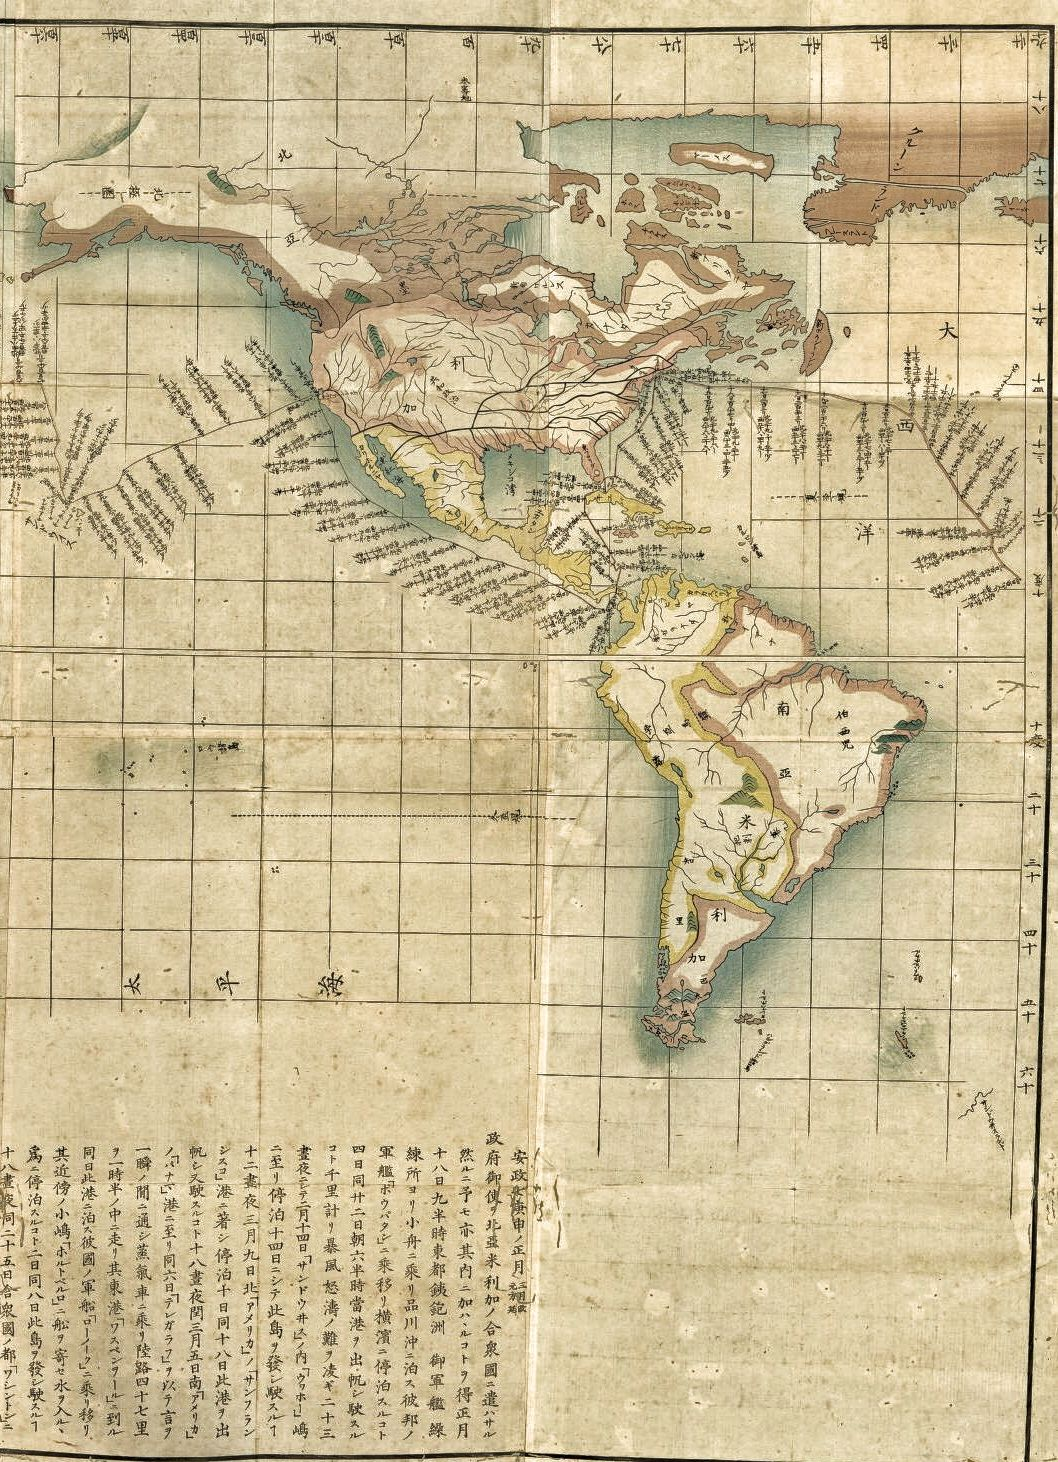 Detail of north and south america from 1862 japanese world map detail of north and south america from 1862 japanese world map kankai kro shinzu contributor names hirose hoan 1808 1865 gumiabroncs Images